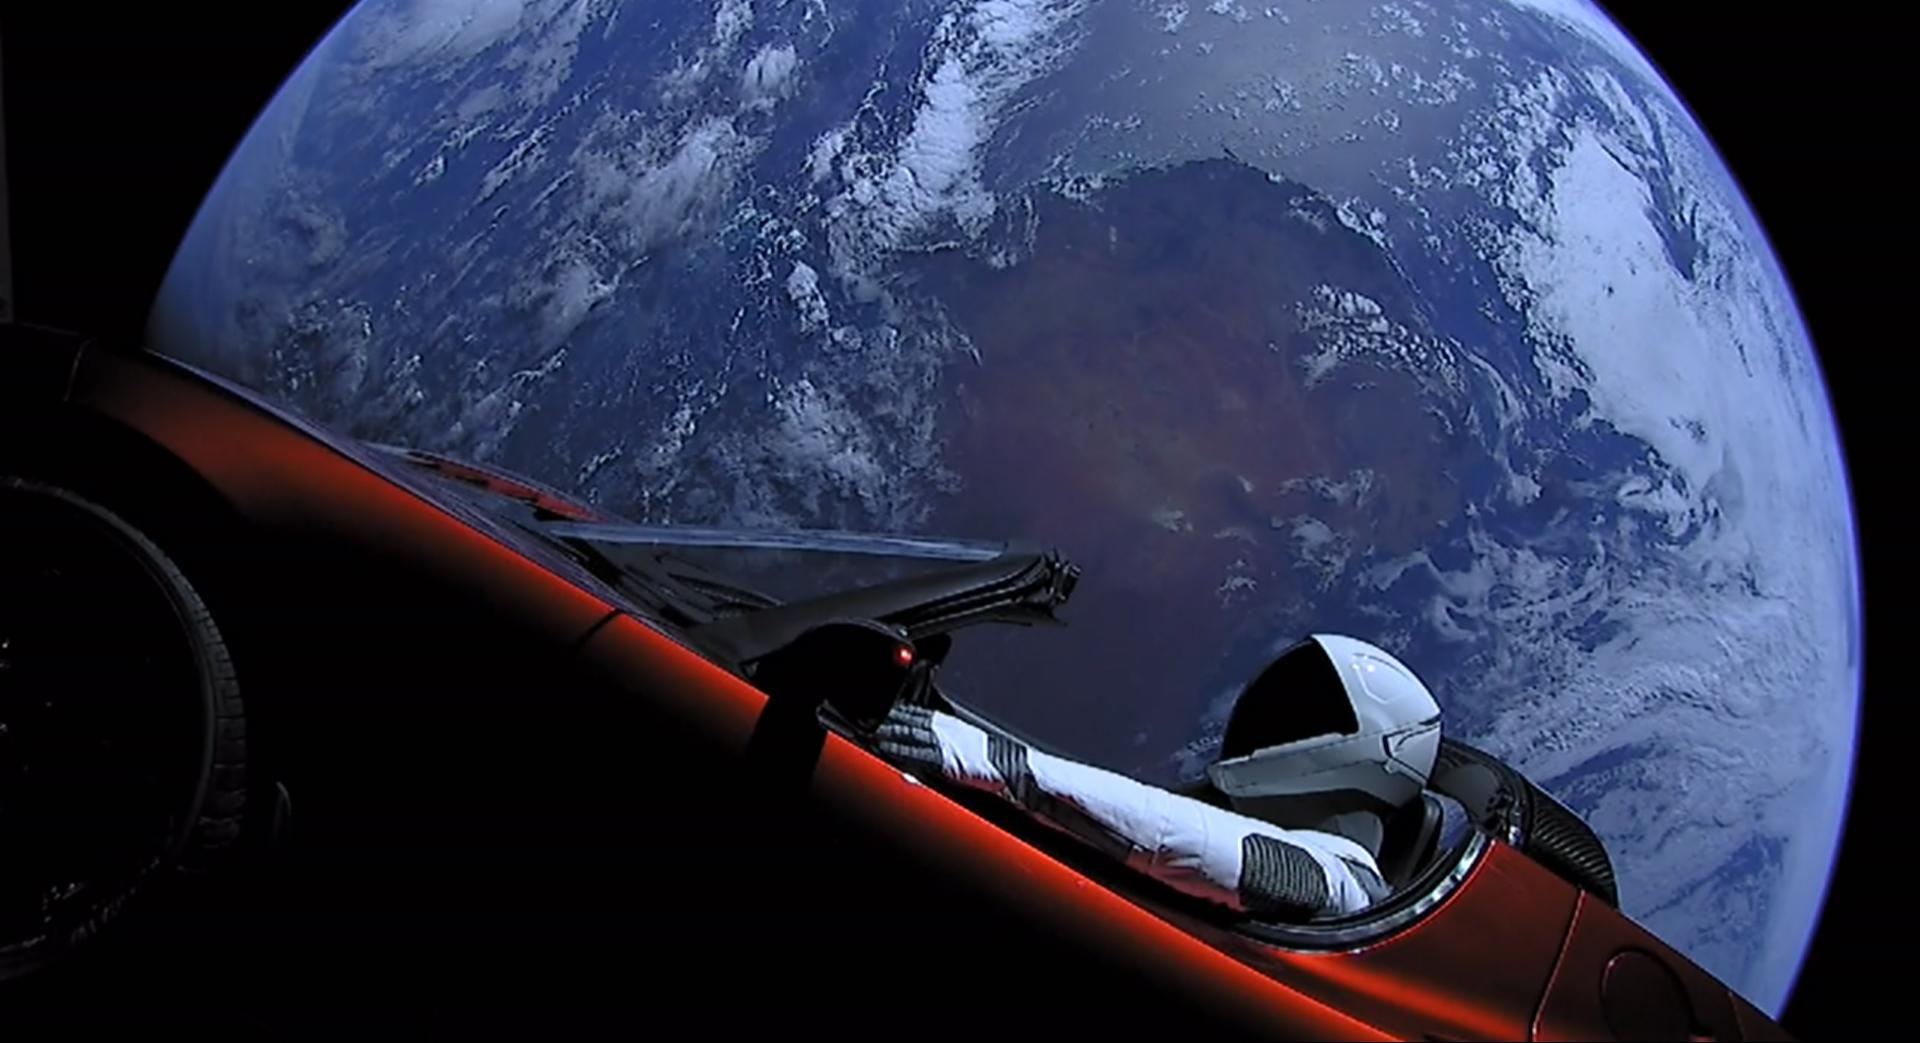 The Tesla Roadster and its mannequin passenger, Starman. This image was captured by cameras onboard the vehicle. (Image: SpaceX)